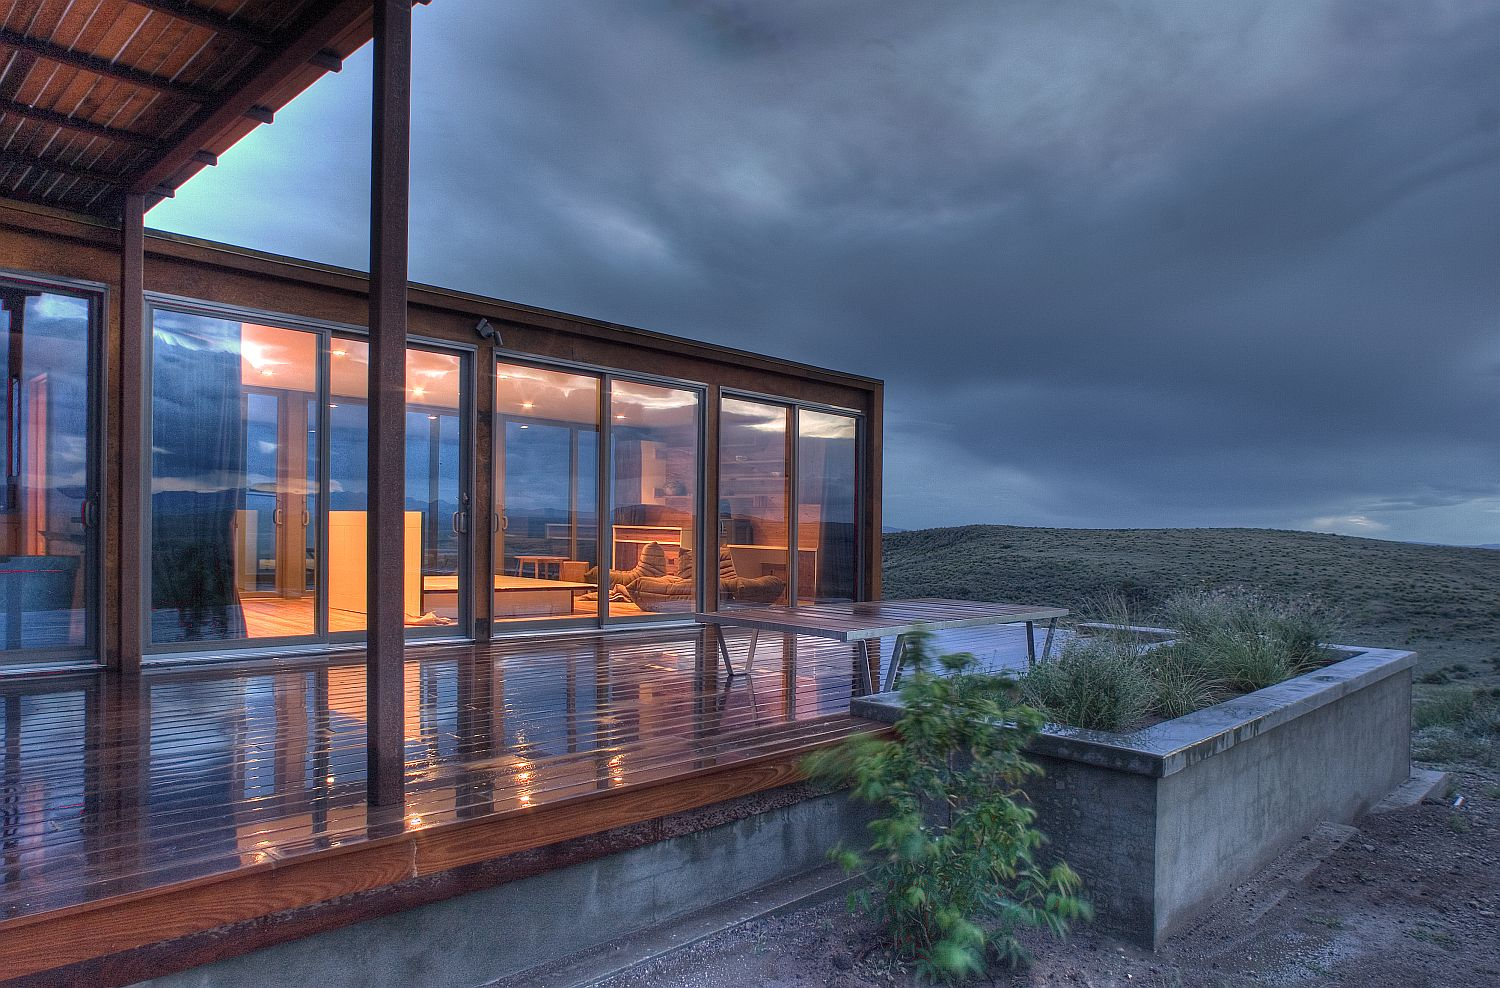 Gallery the marfa weehouse a compact desert retreat for Tiny home architects